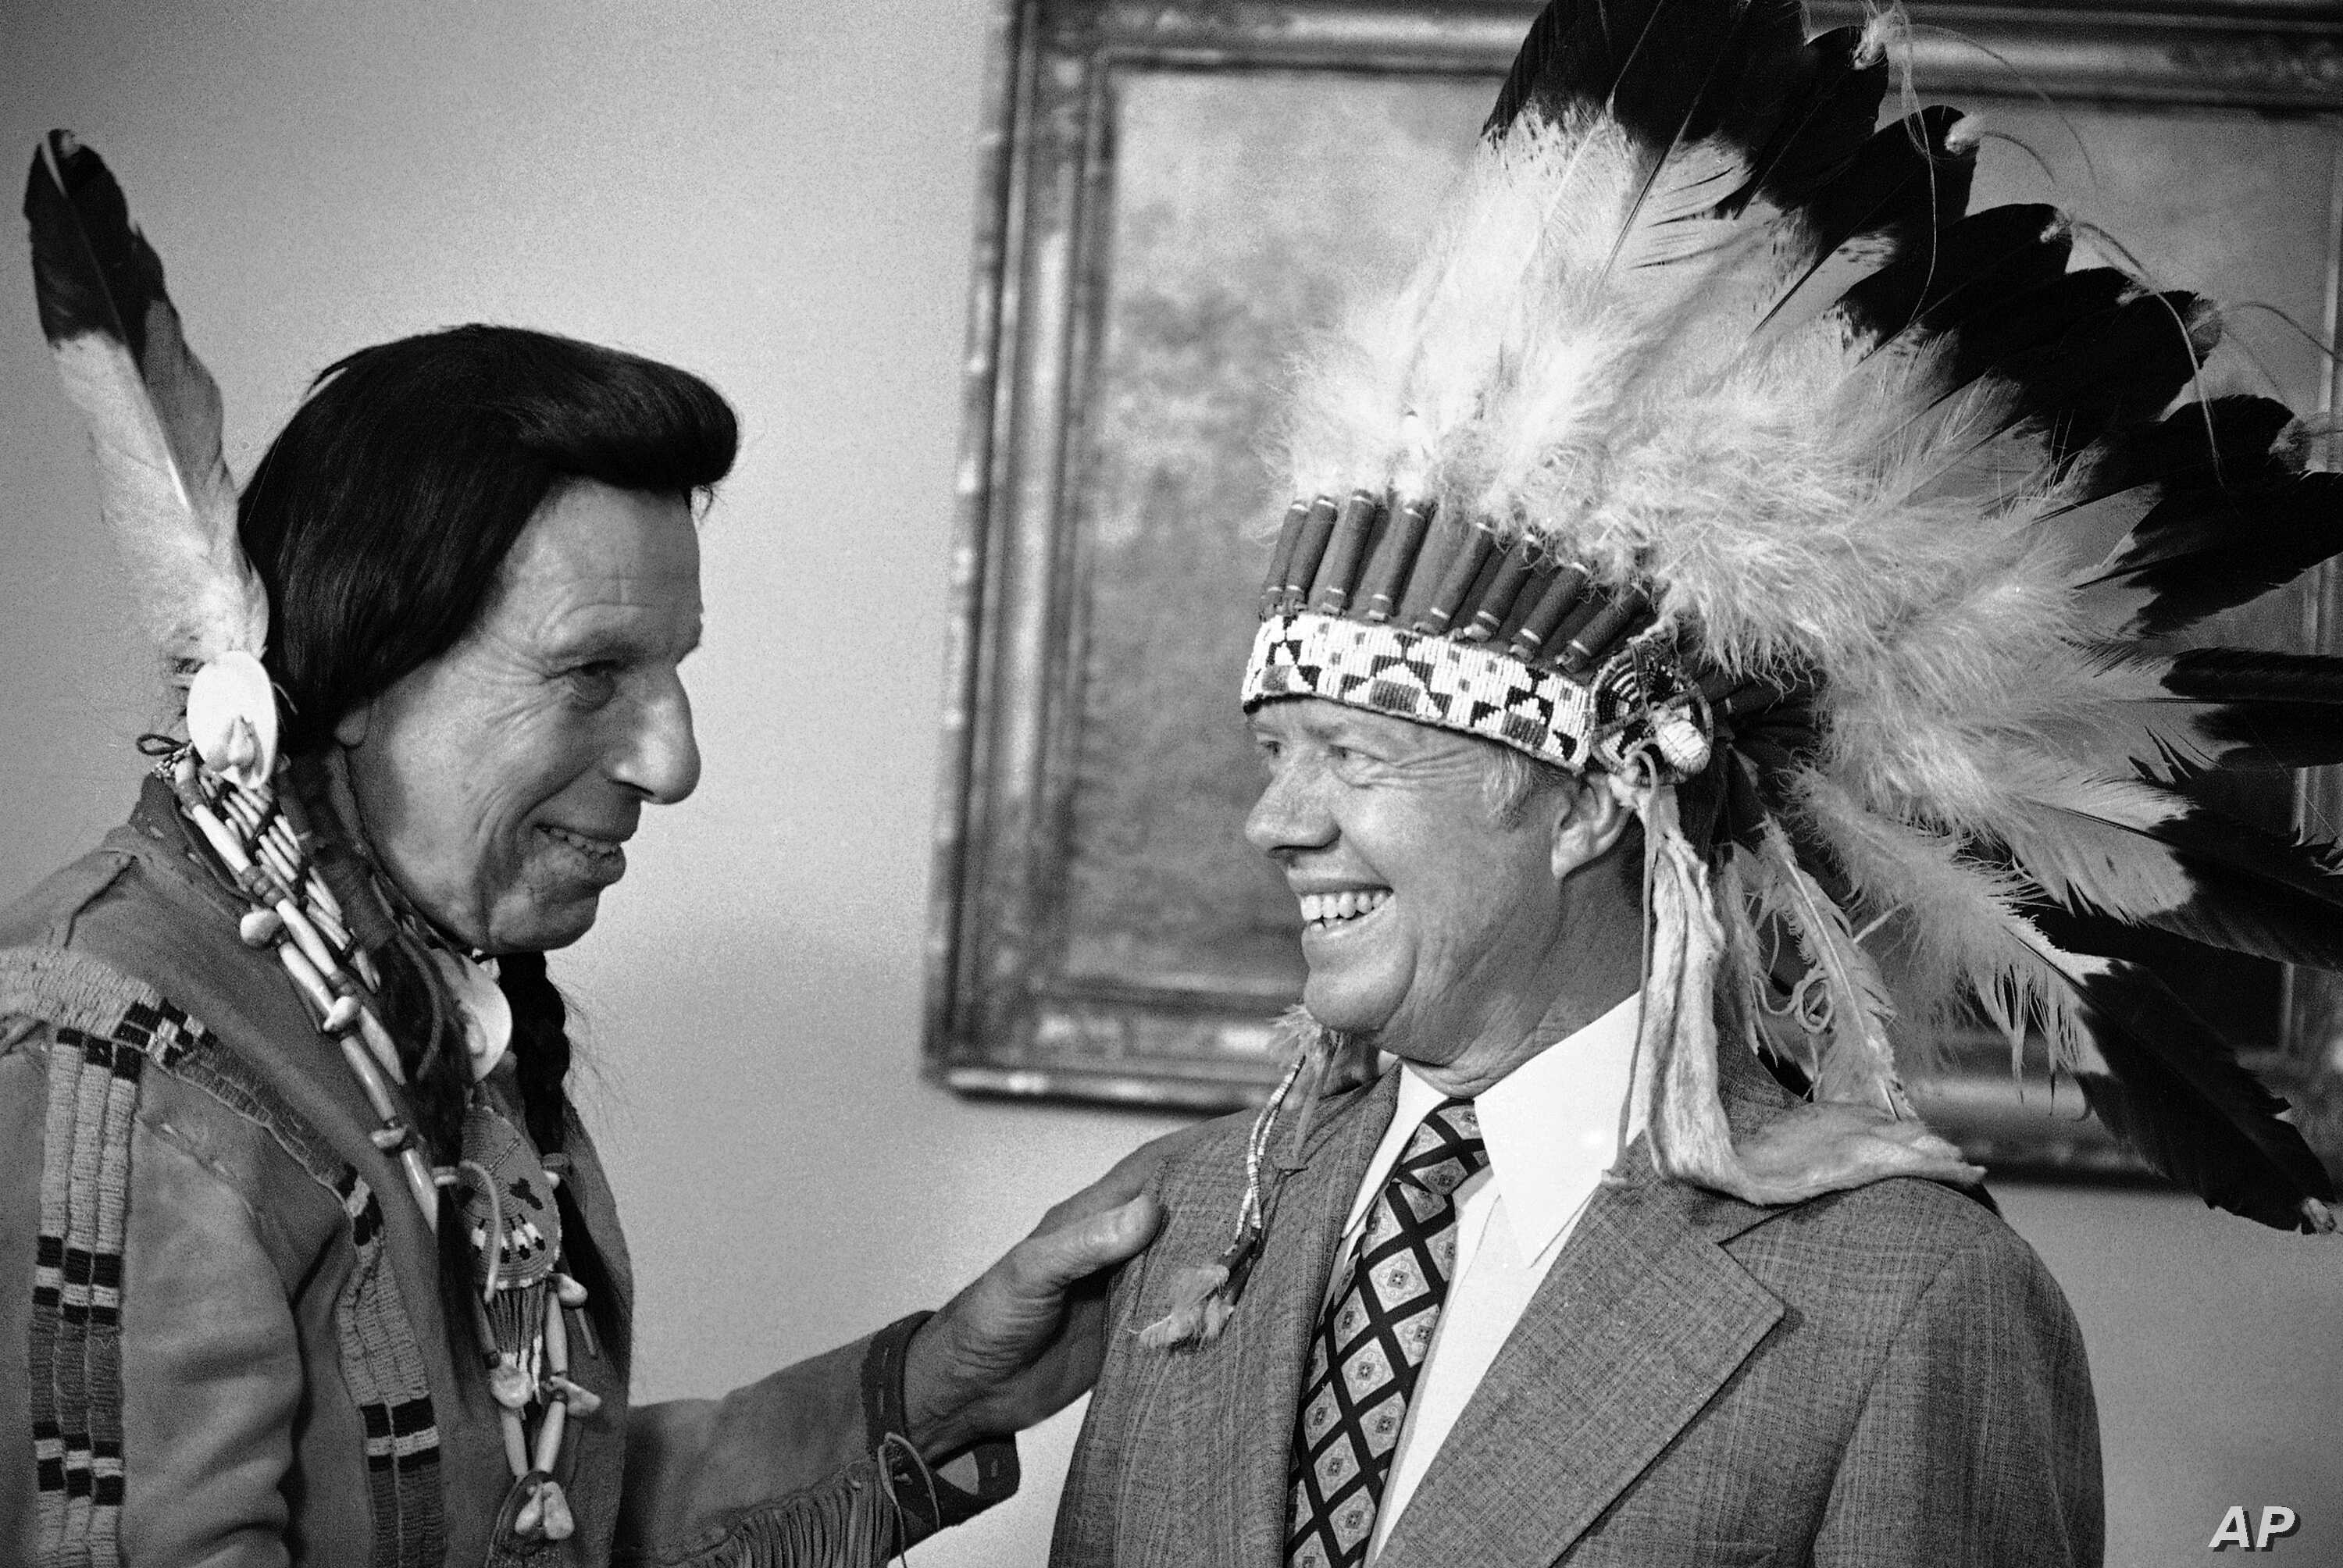 Native Americans Decry Appropriation of Their History